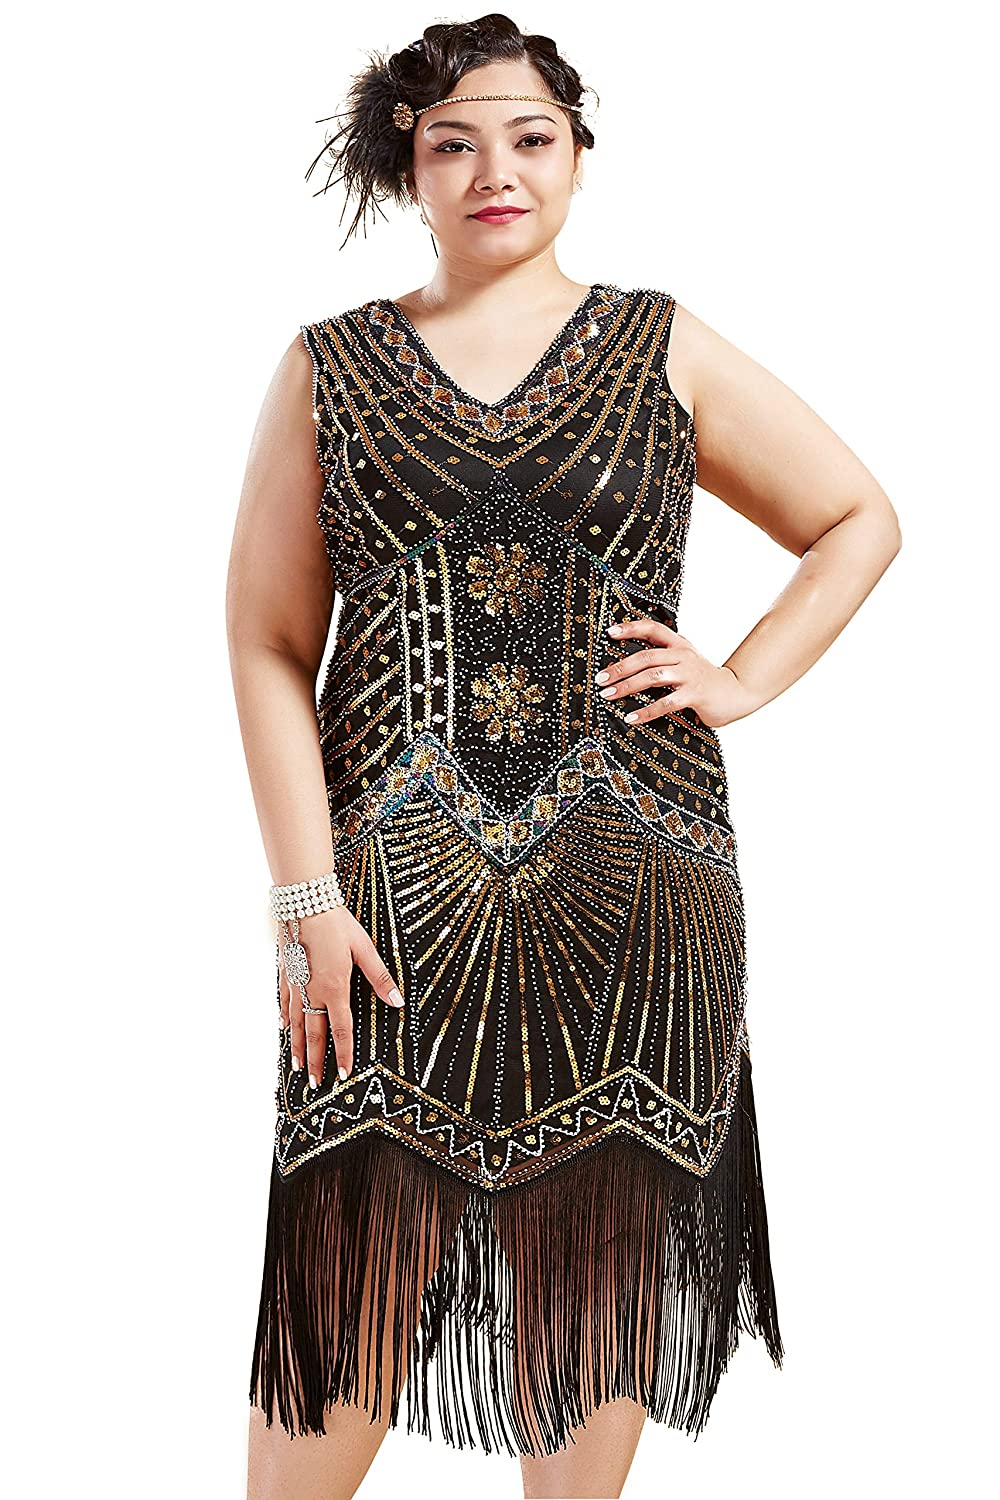 1920s Plus Size Flapper Dresses, Gatsby Dresses, Flapper Costumes BABEYOND Womens Plus Size Flapper Dresses 1920s V Neck Beaded Fringed Great Gatsby Dress $45.99 AT vintagedancer.com